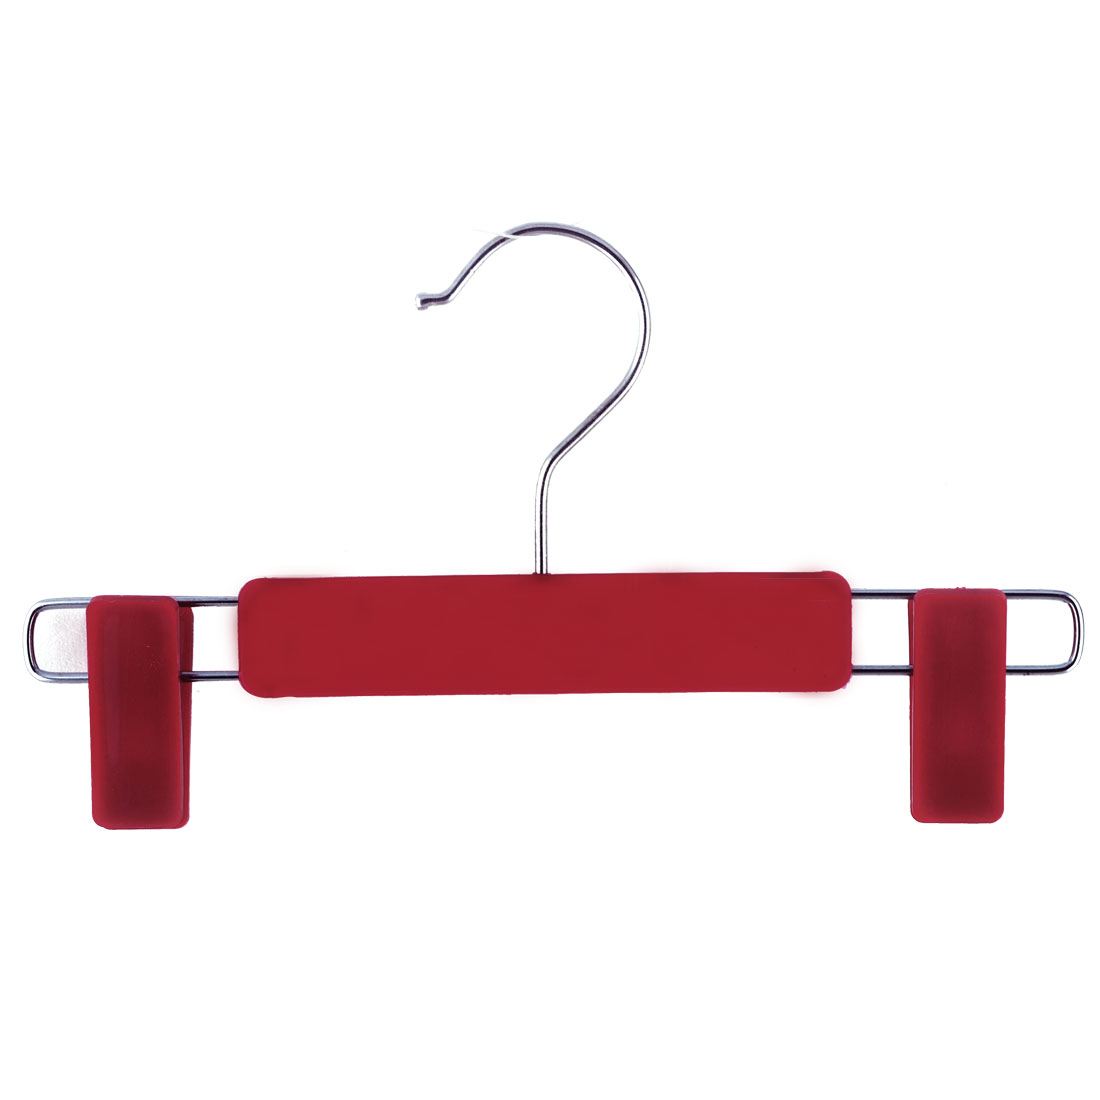 Home Wardrobe Plastic Double Clips Suits Pants Clothes Clothing Hanger Hook Red